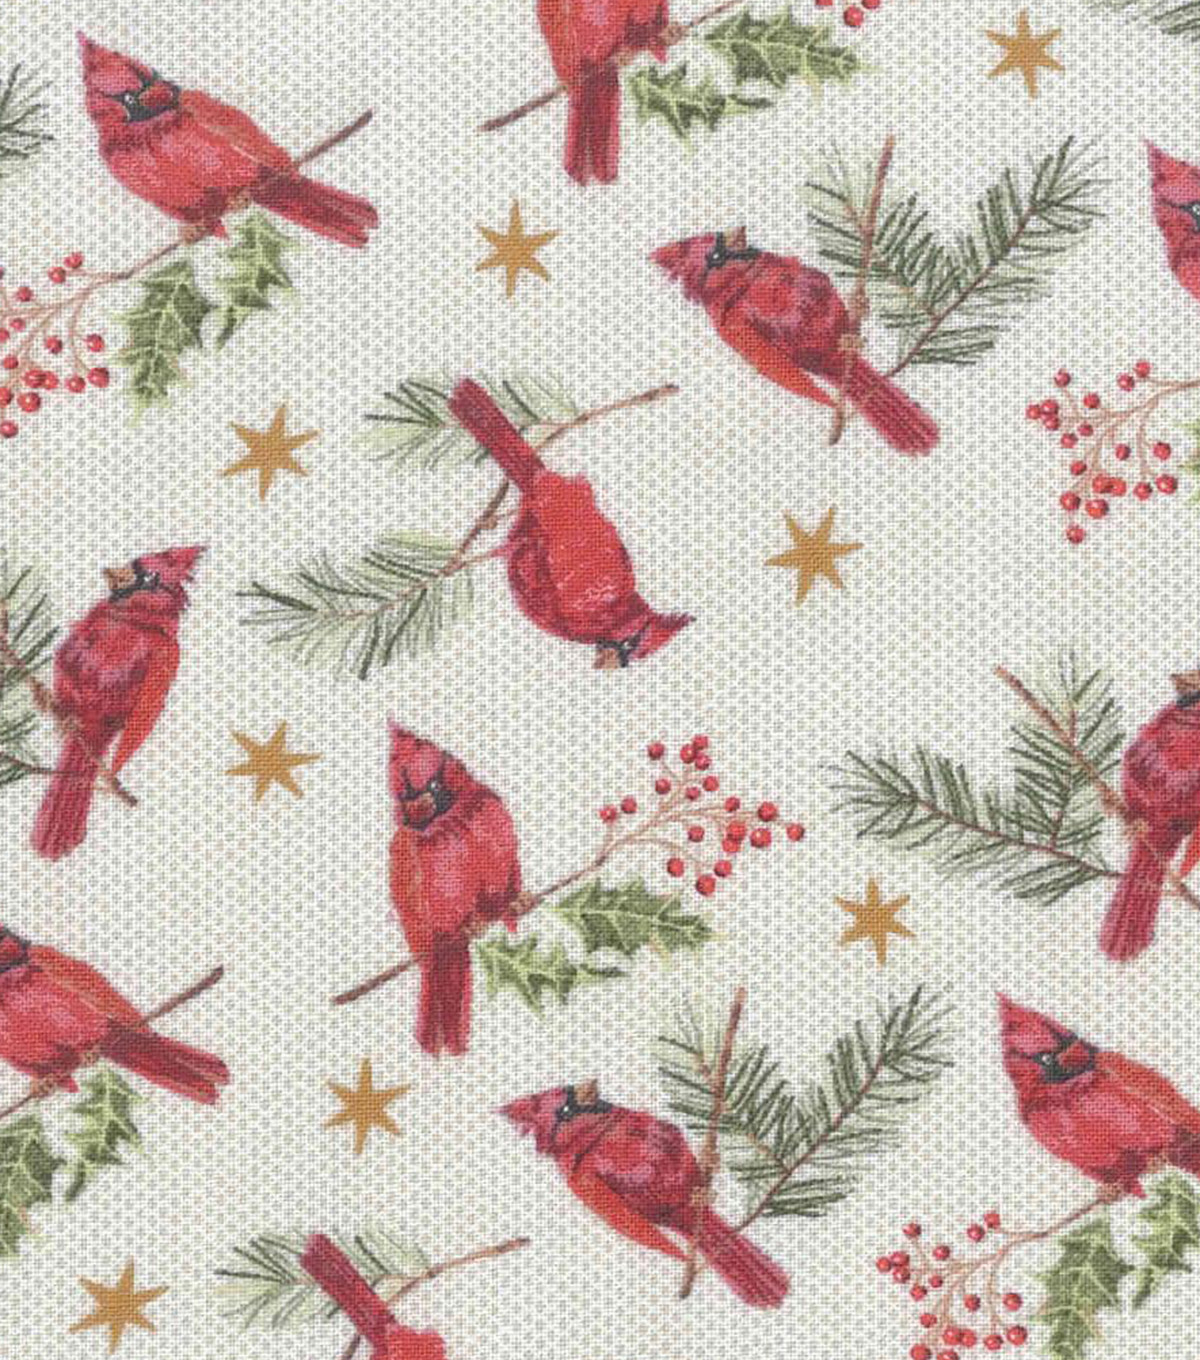 Christmas Cotton Fabric-Tossed Cardnials On Holly